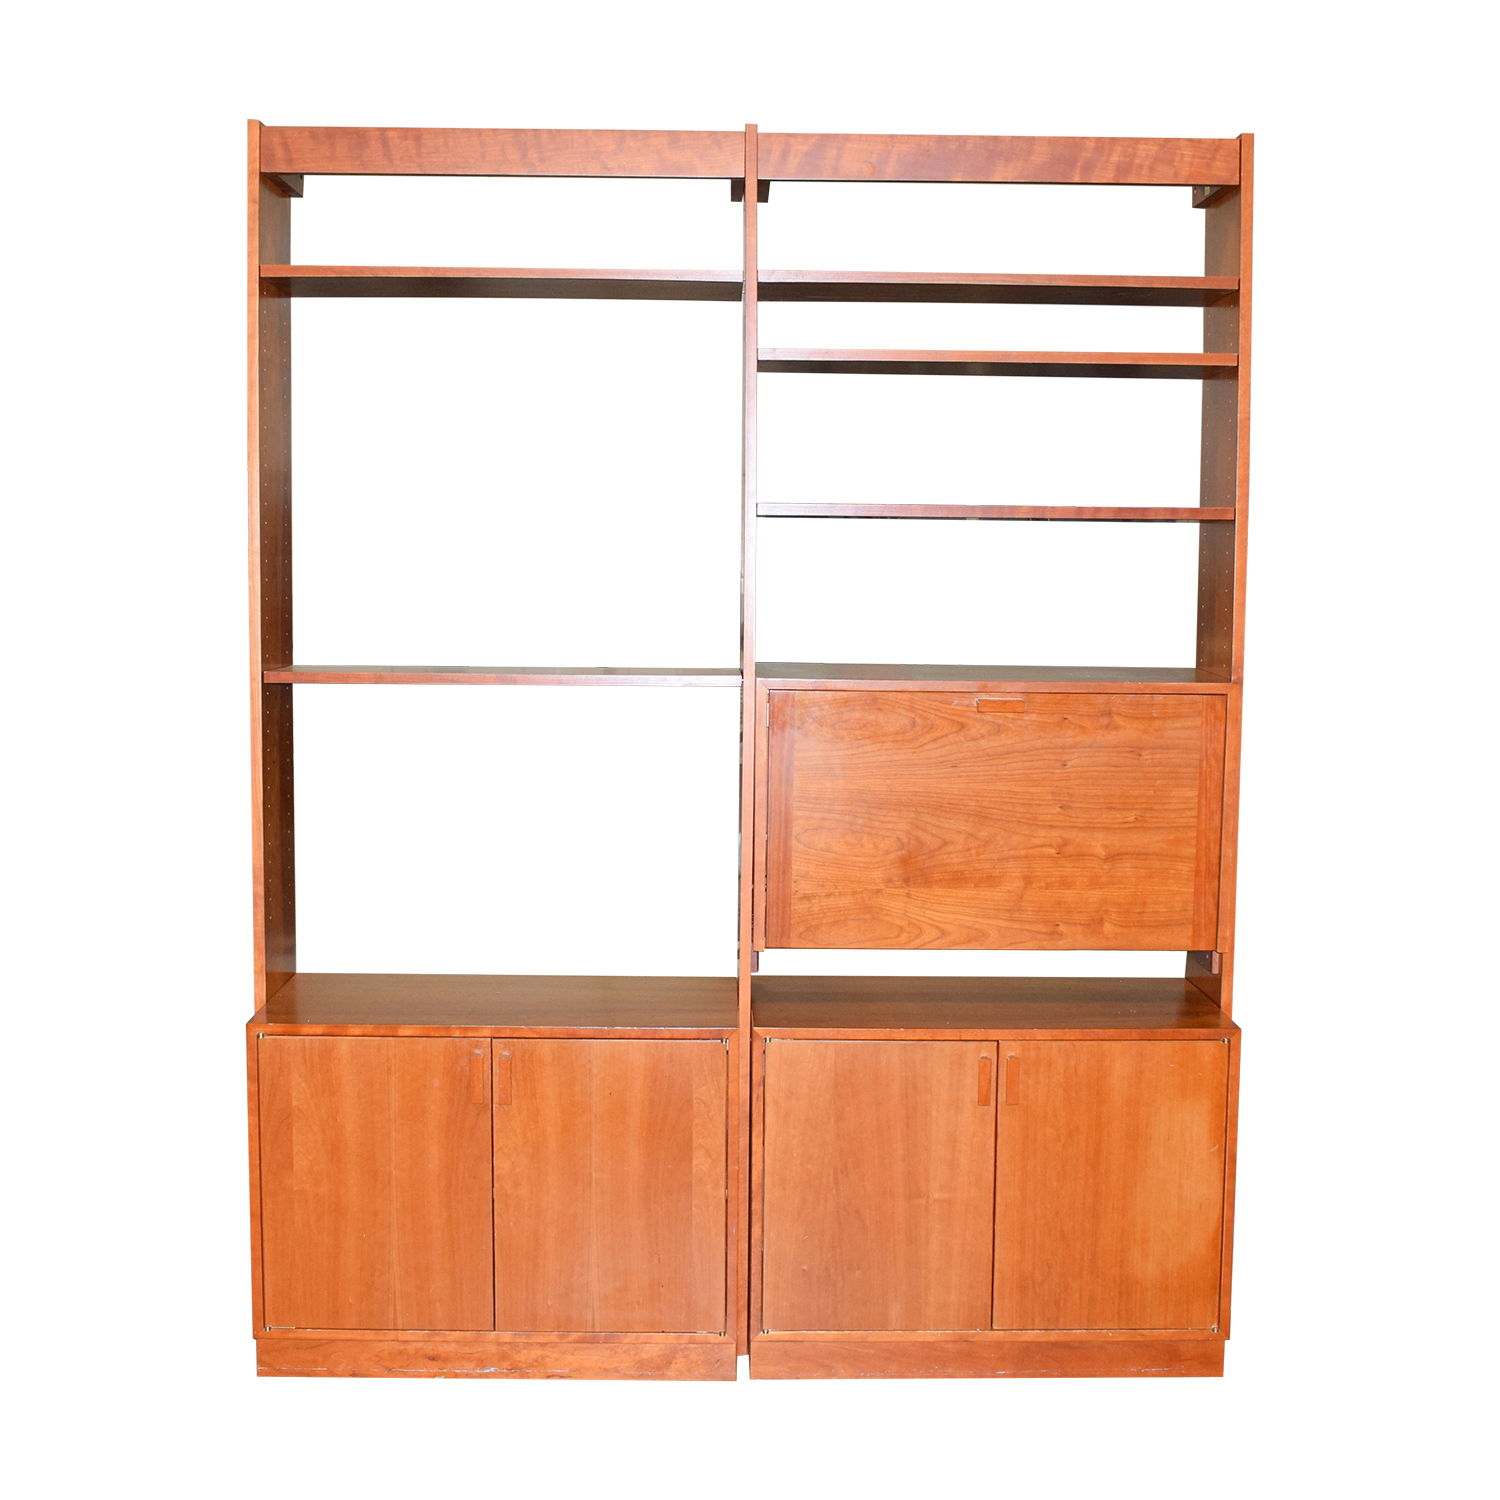 shop Charles Webb Cherry Wood Bookshelf Wall Unit with Desk Charles Webb Bookcases & Shelving